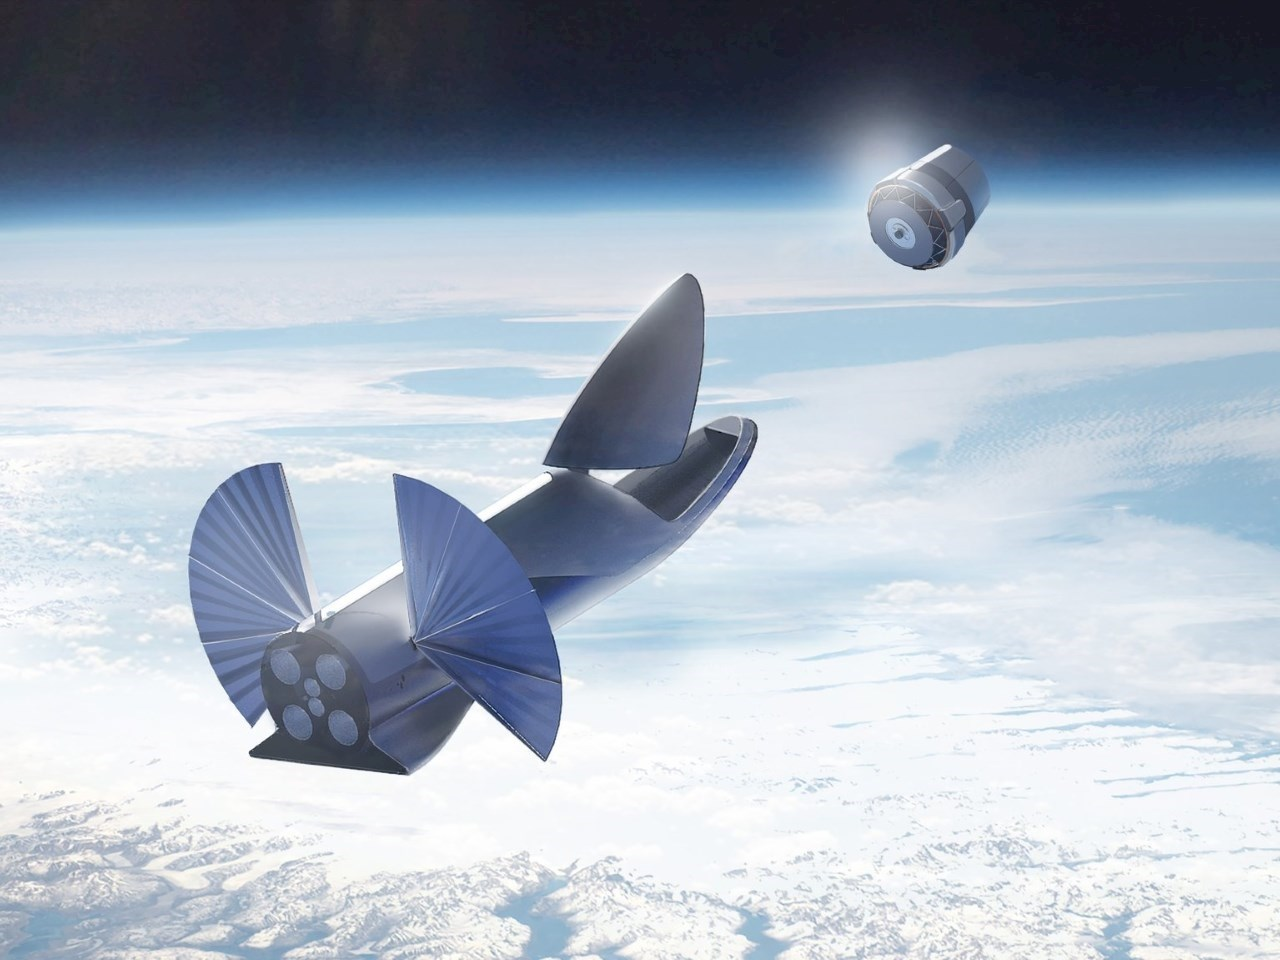 Capable of transporting satellites to orbit